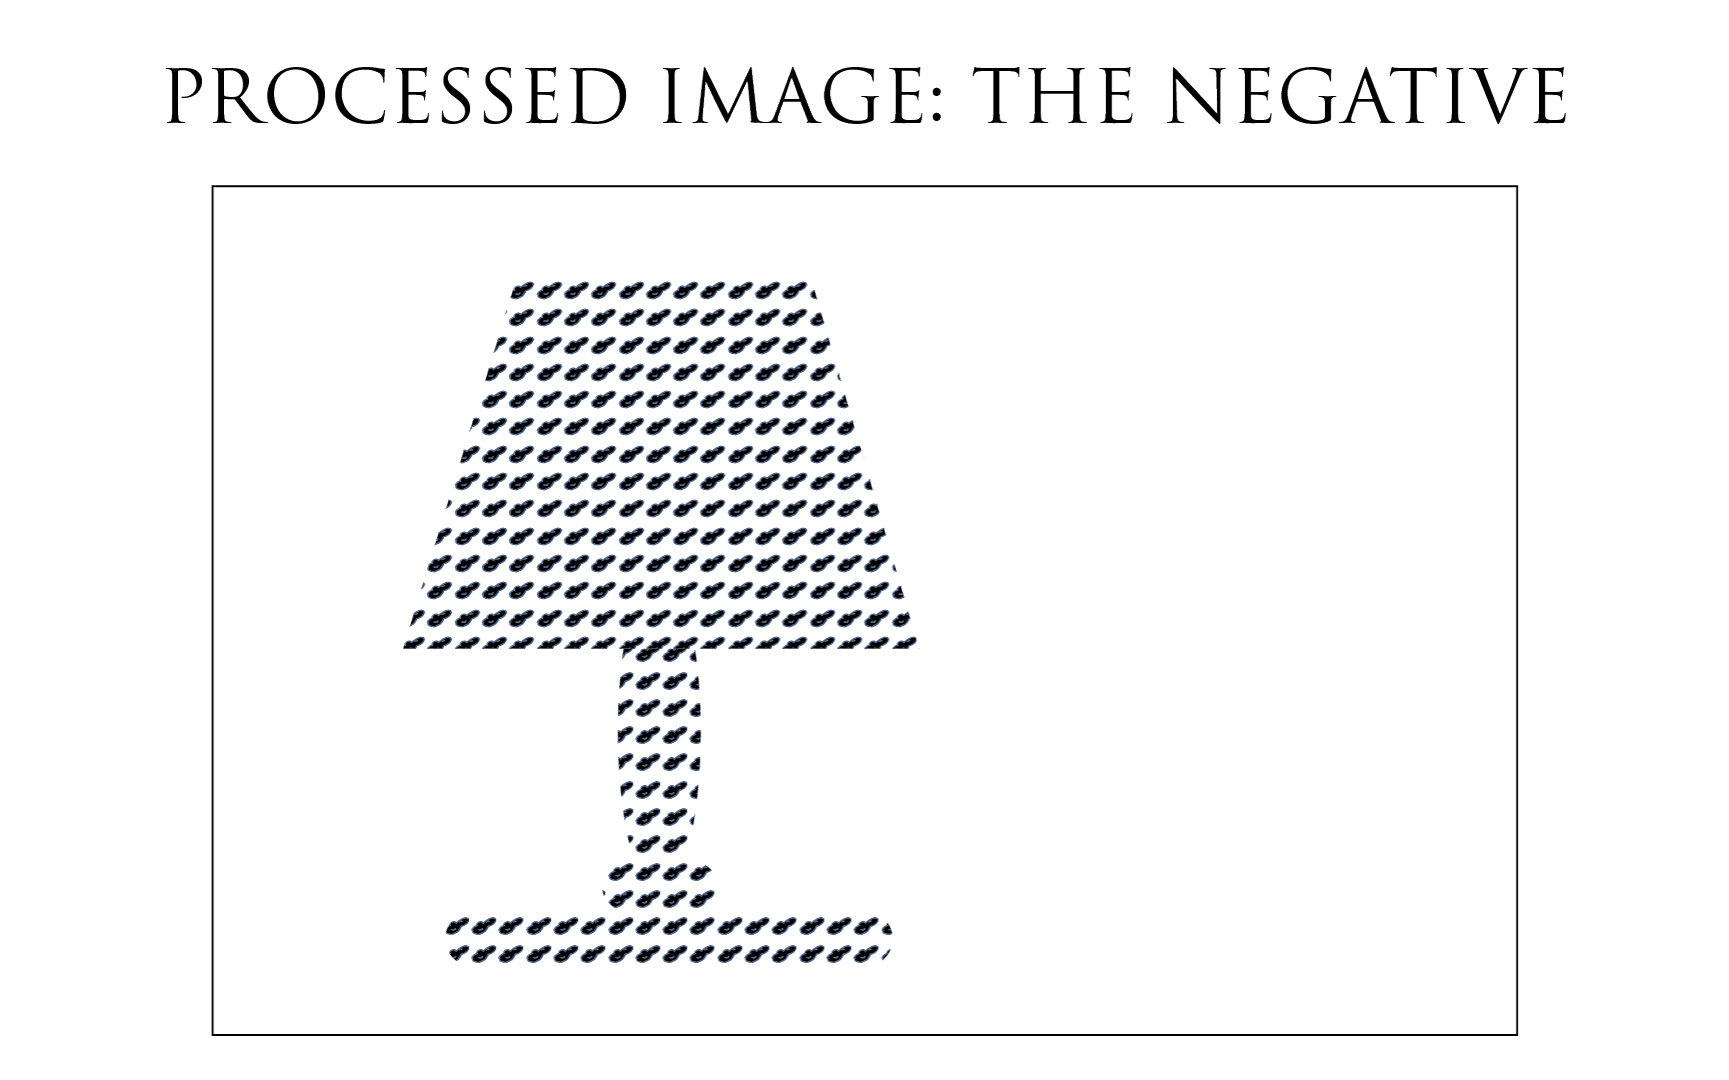 Illustration: fully processed negative